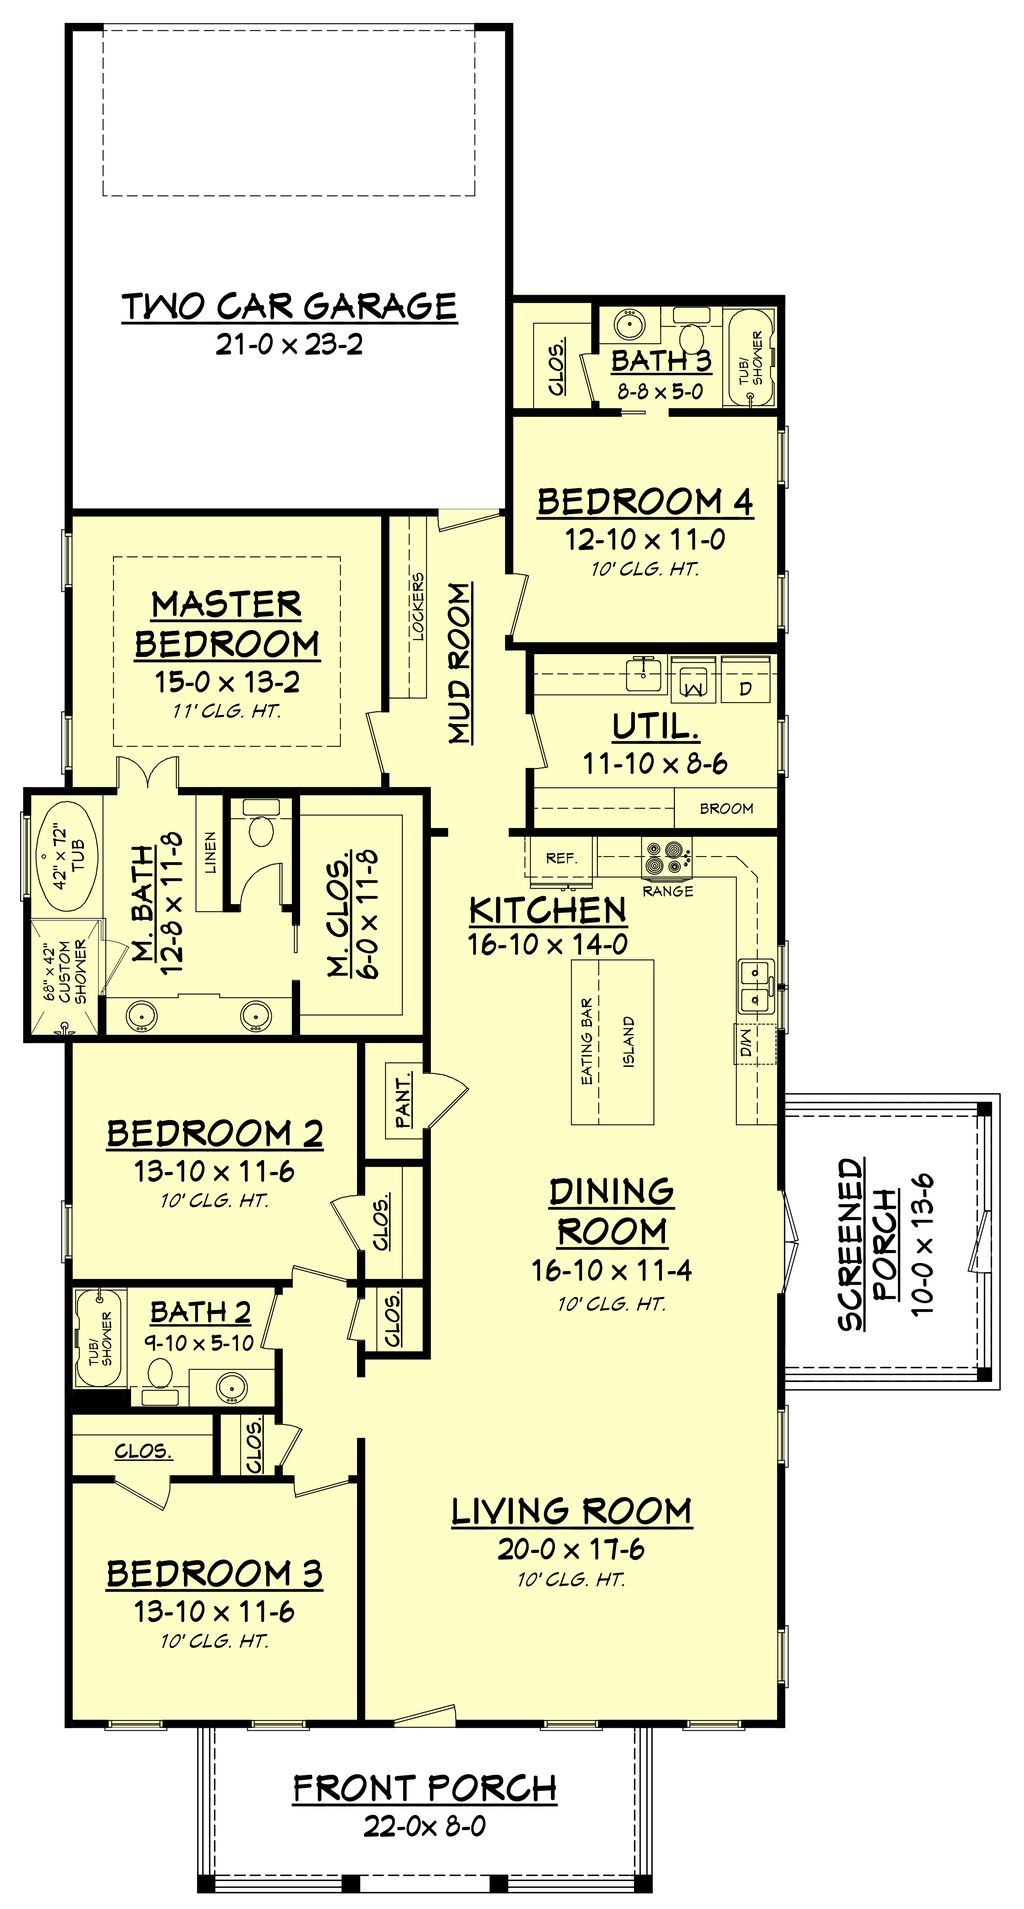 Craftsman Style House Plan 4 Beds 3 Baths 2219 Sq Ft Plan 430 174 In 2020 Narrow Lot House Plans Narrow House Plans Craftsman Style House Plans